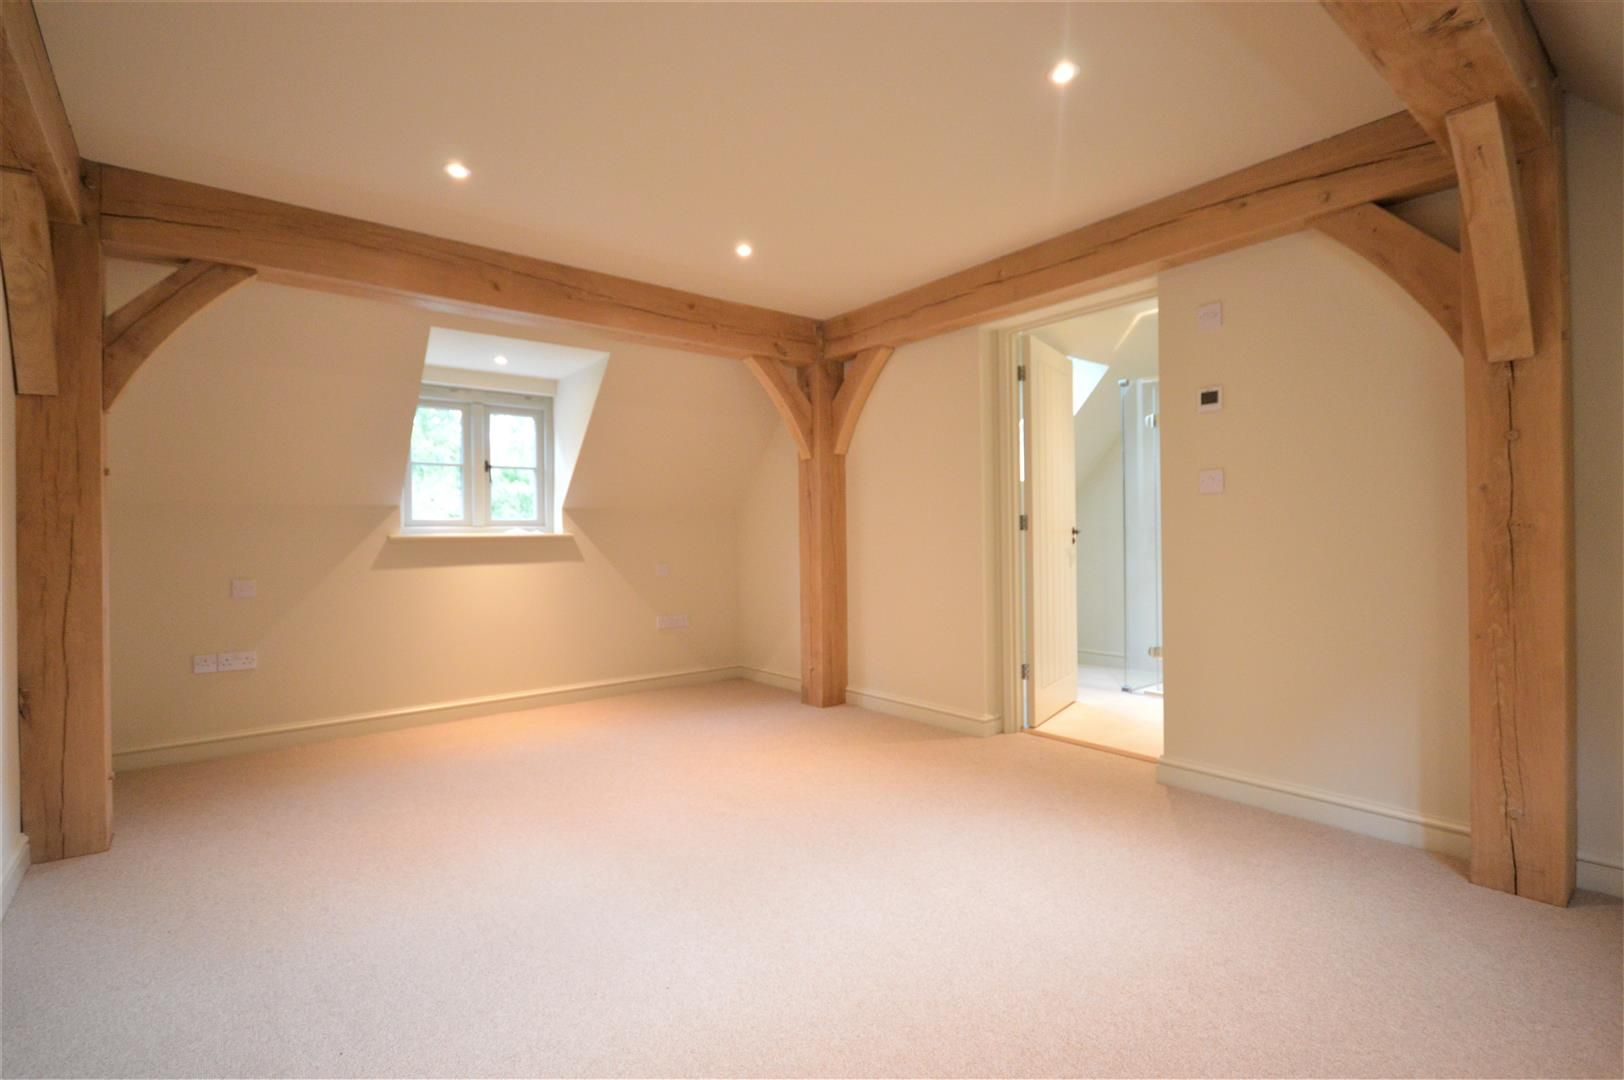 3 bed detached for sale in Dilwyn 9